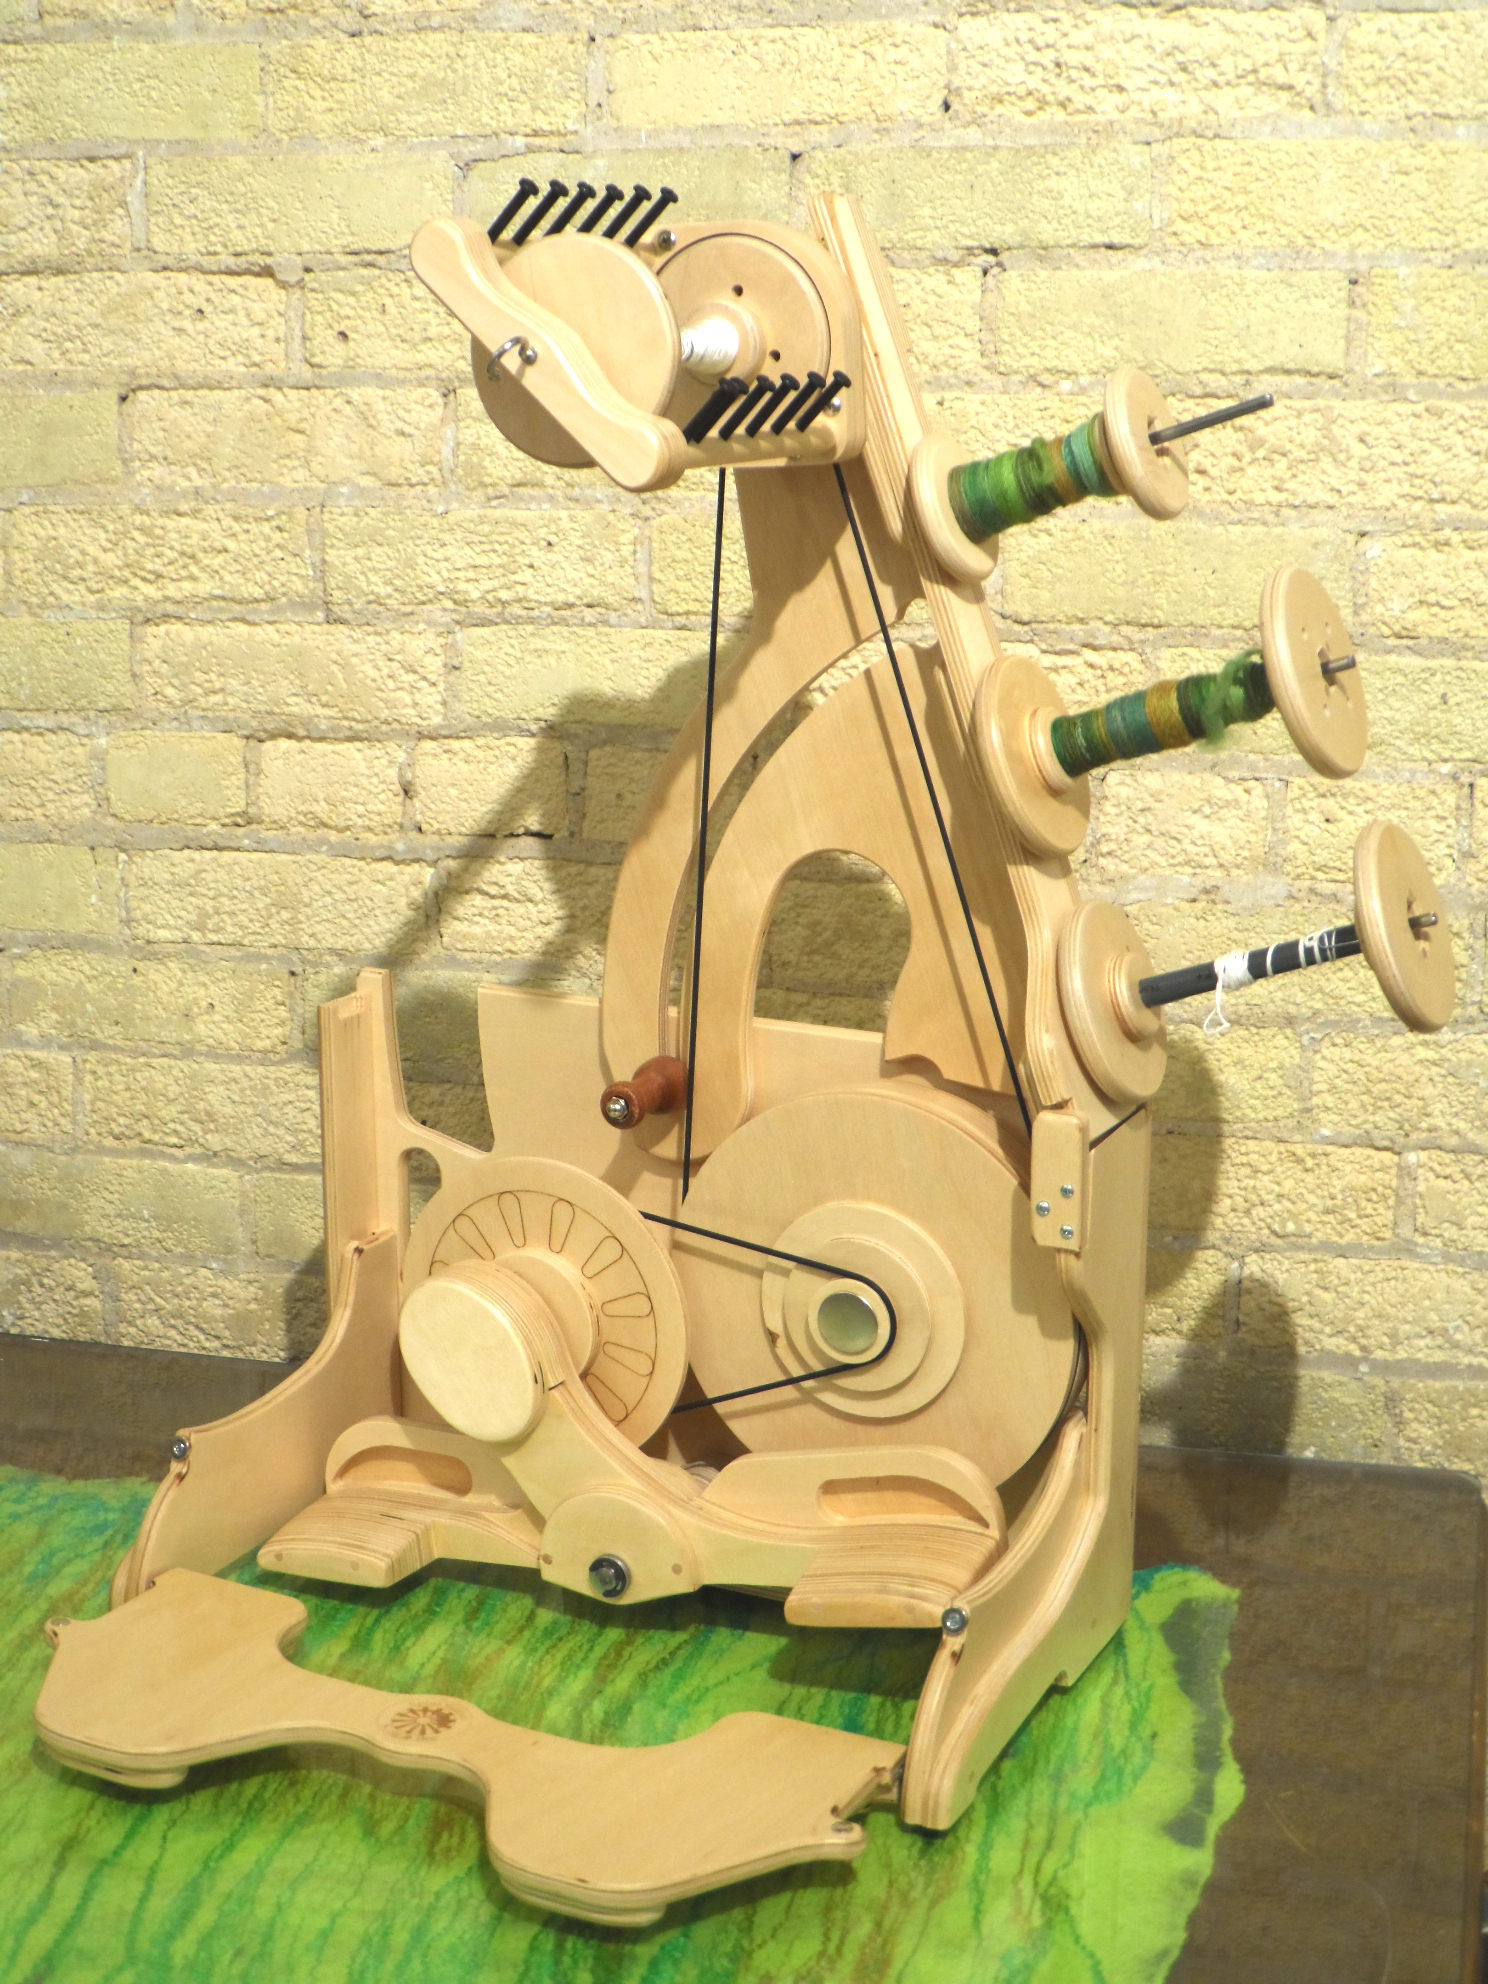 Bee Travel spinning wheel From SpinOlution